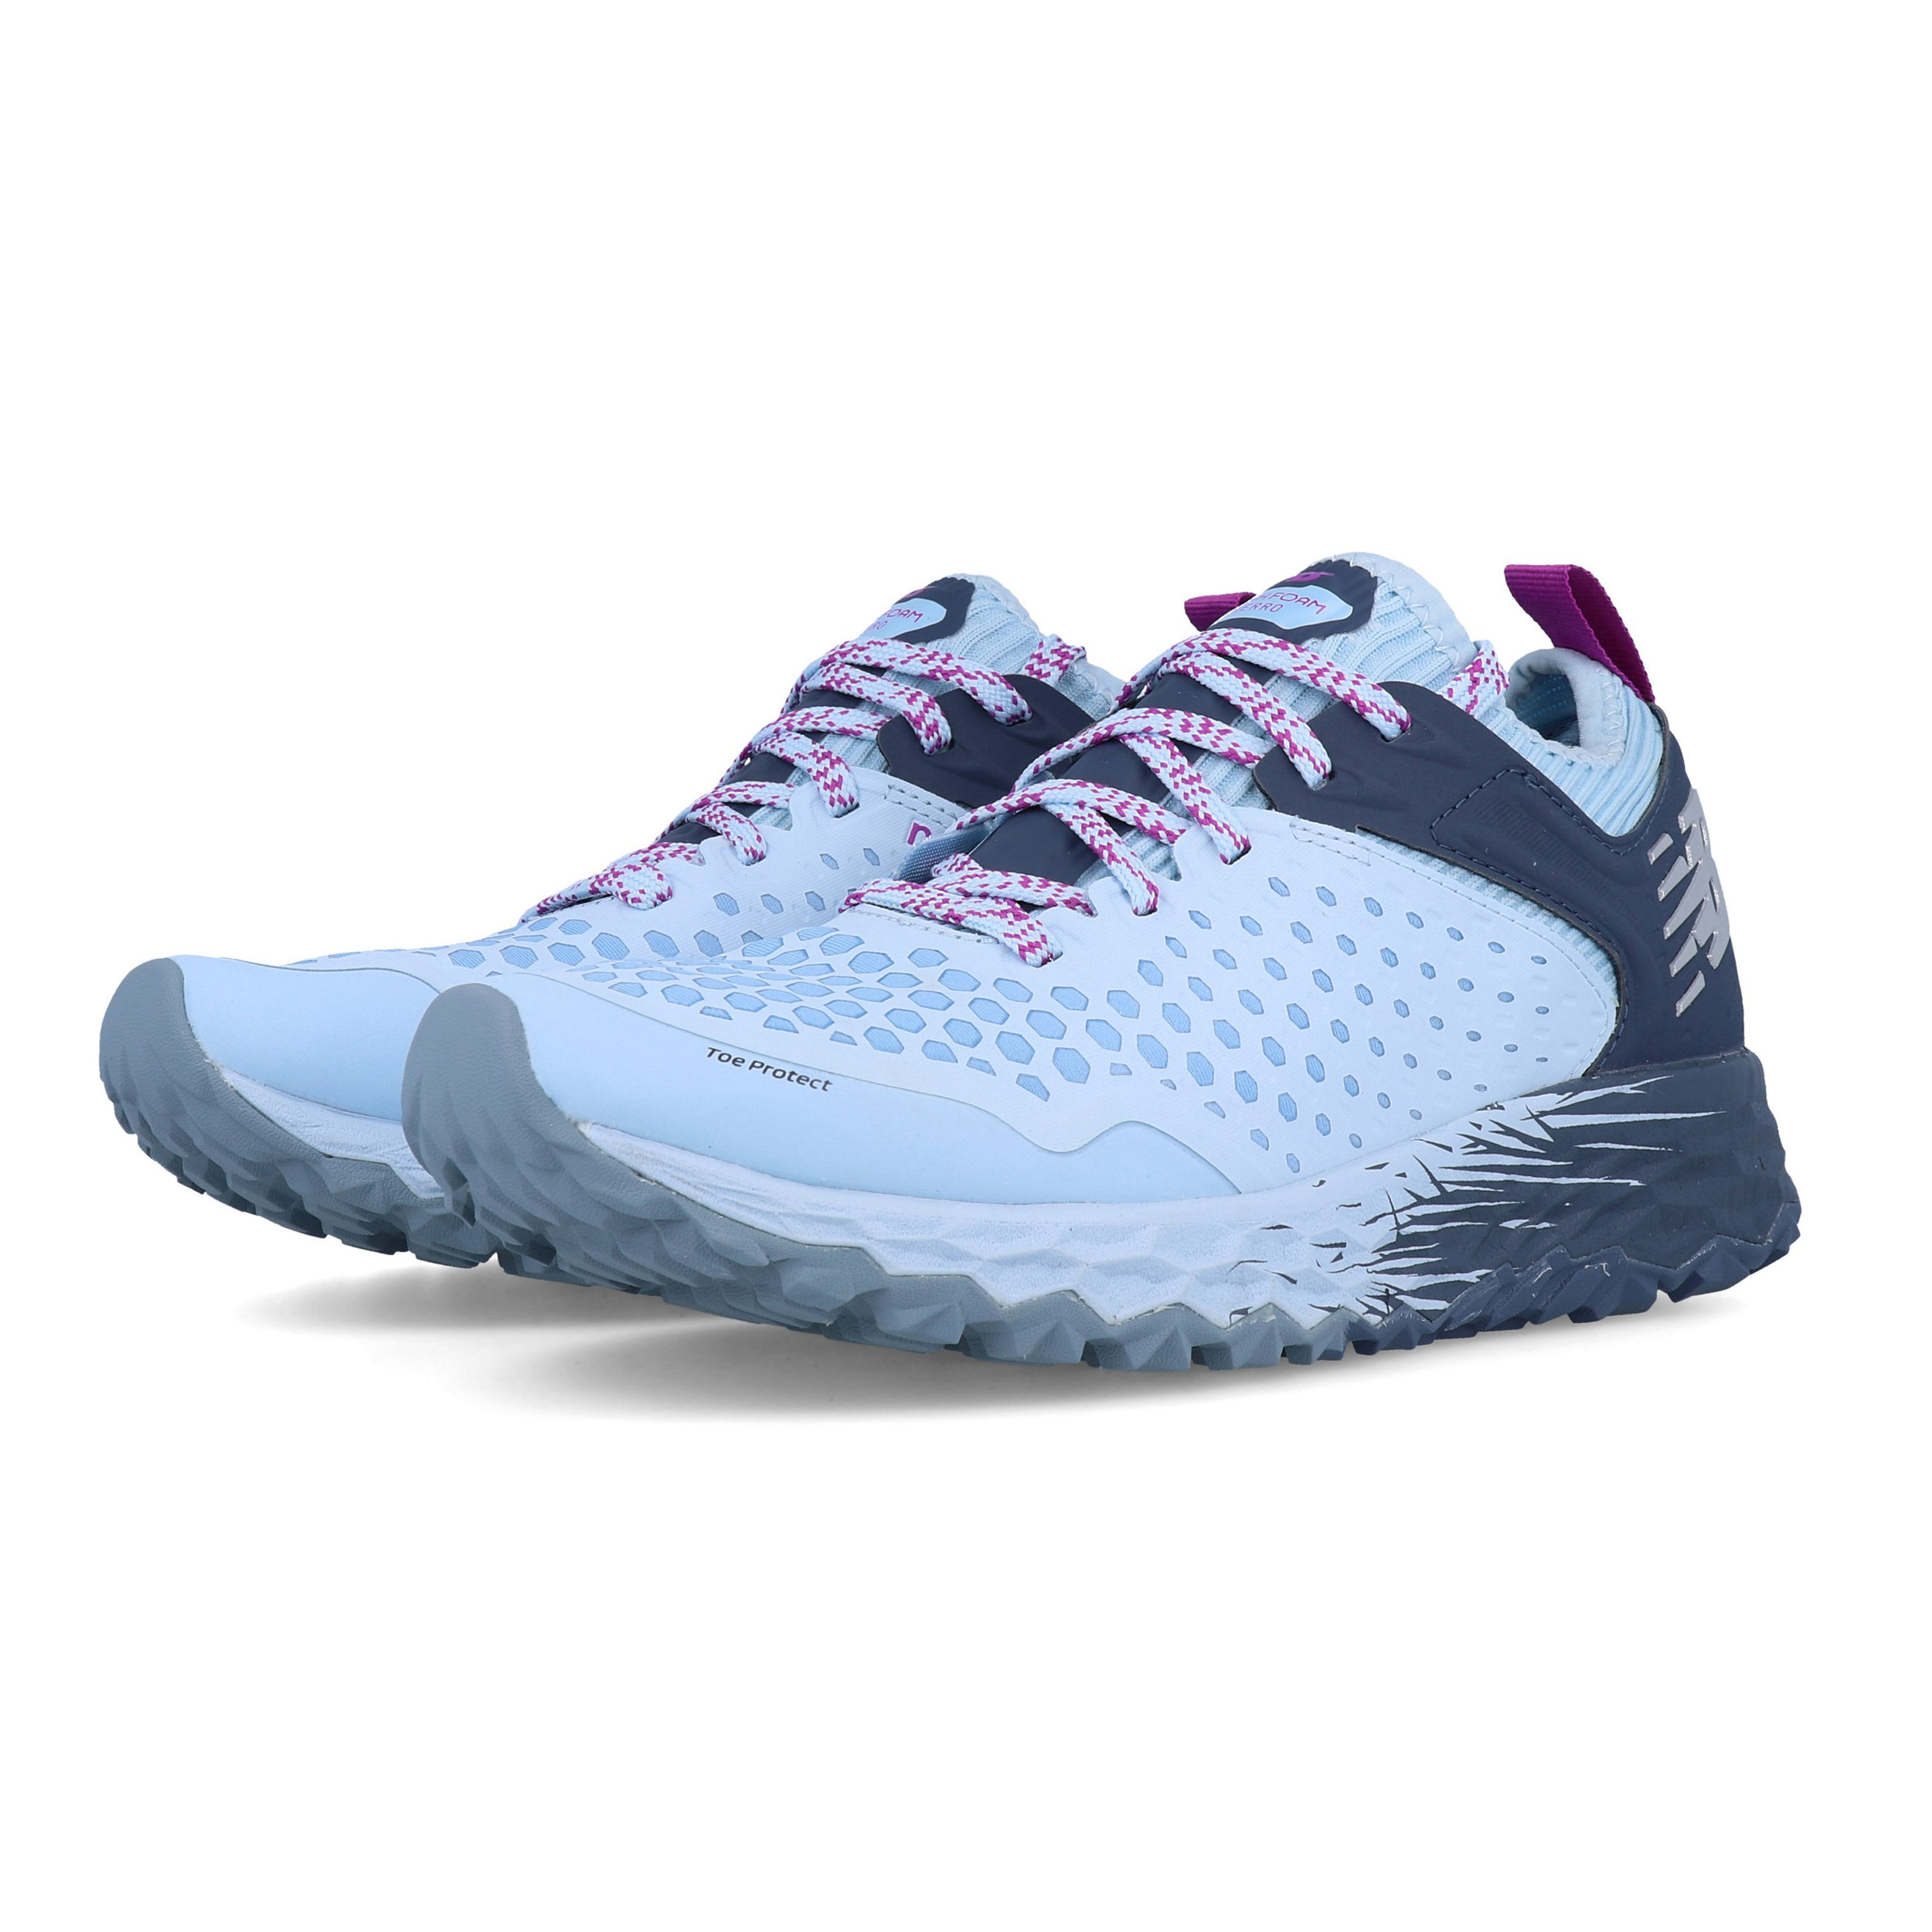 4d9d1d008cb Details about New Balance Womens Fresh Foam Hierro v4 Trail Running Shoes  Trainers